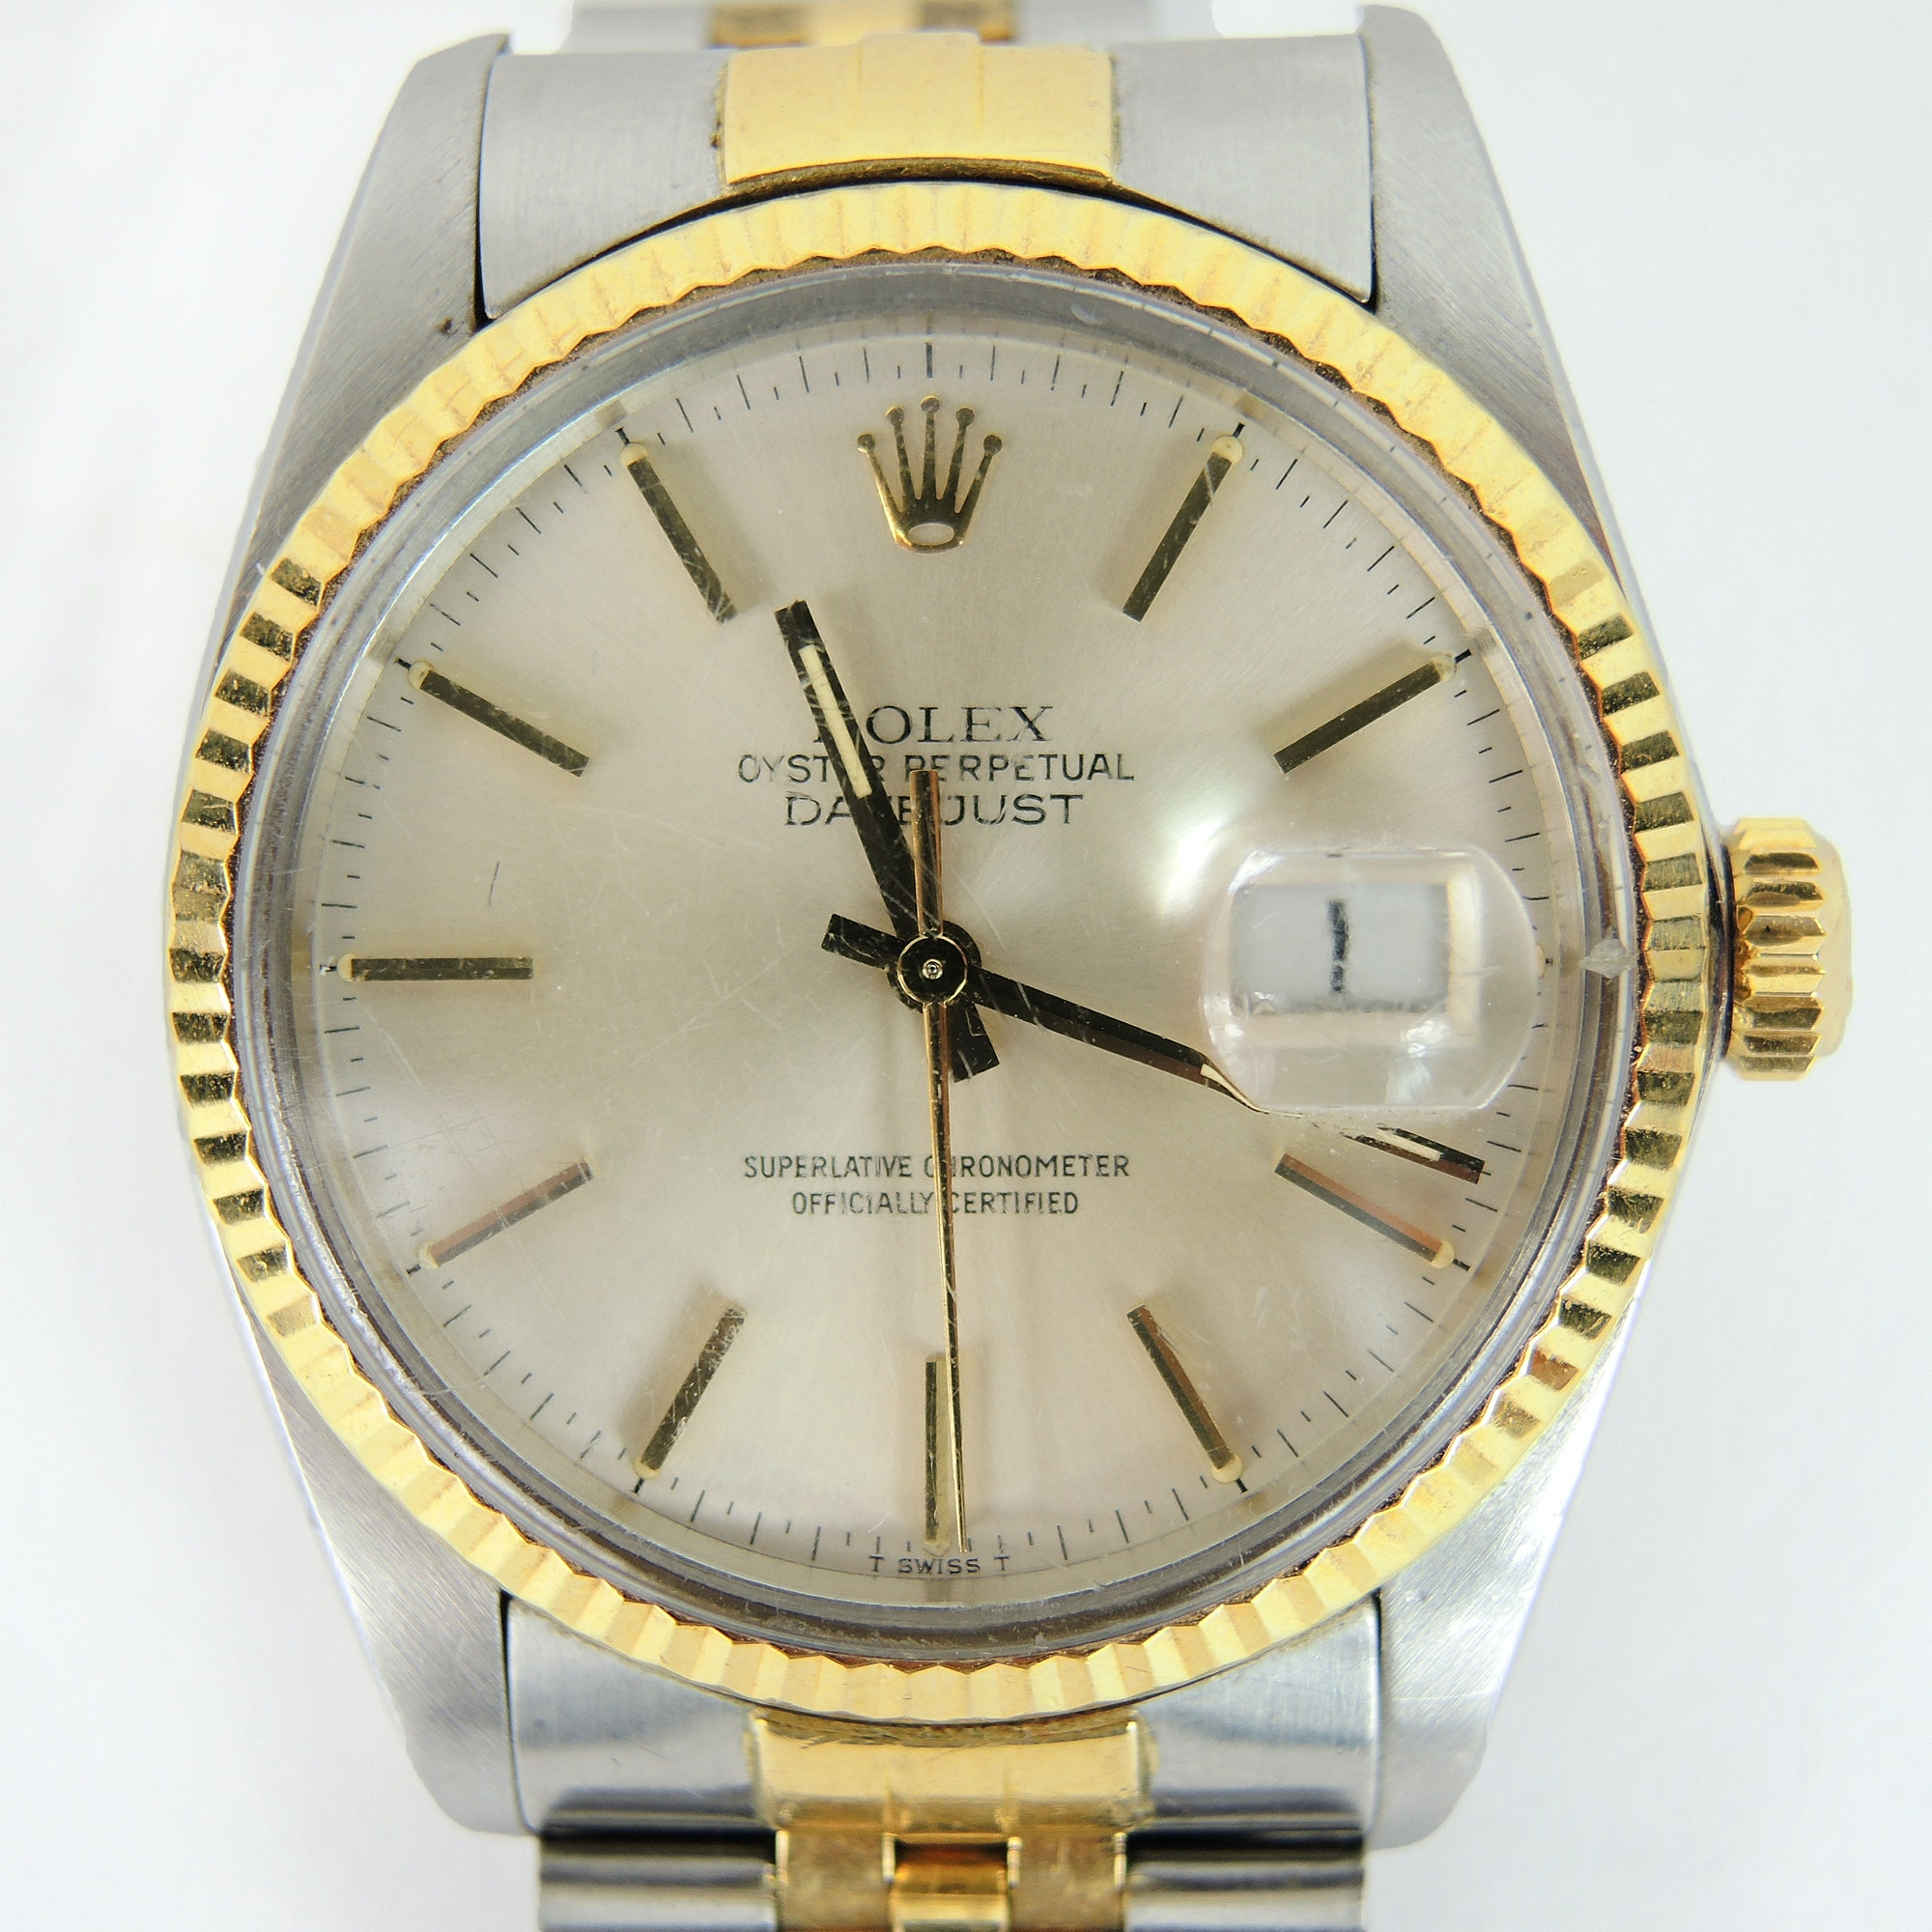 Rolex Datejust 18K Gold and Steel Automatic Wristwatch